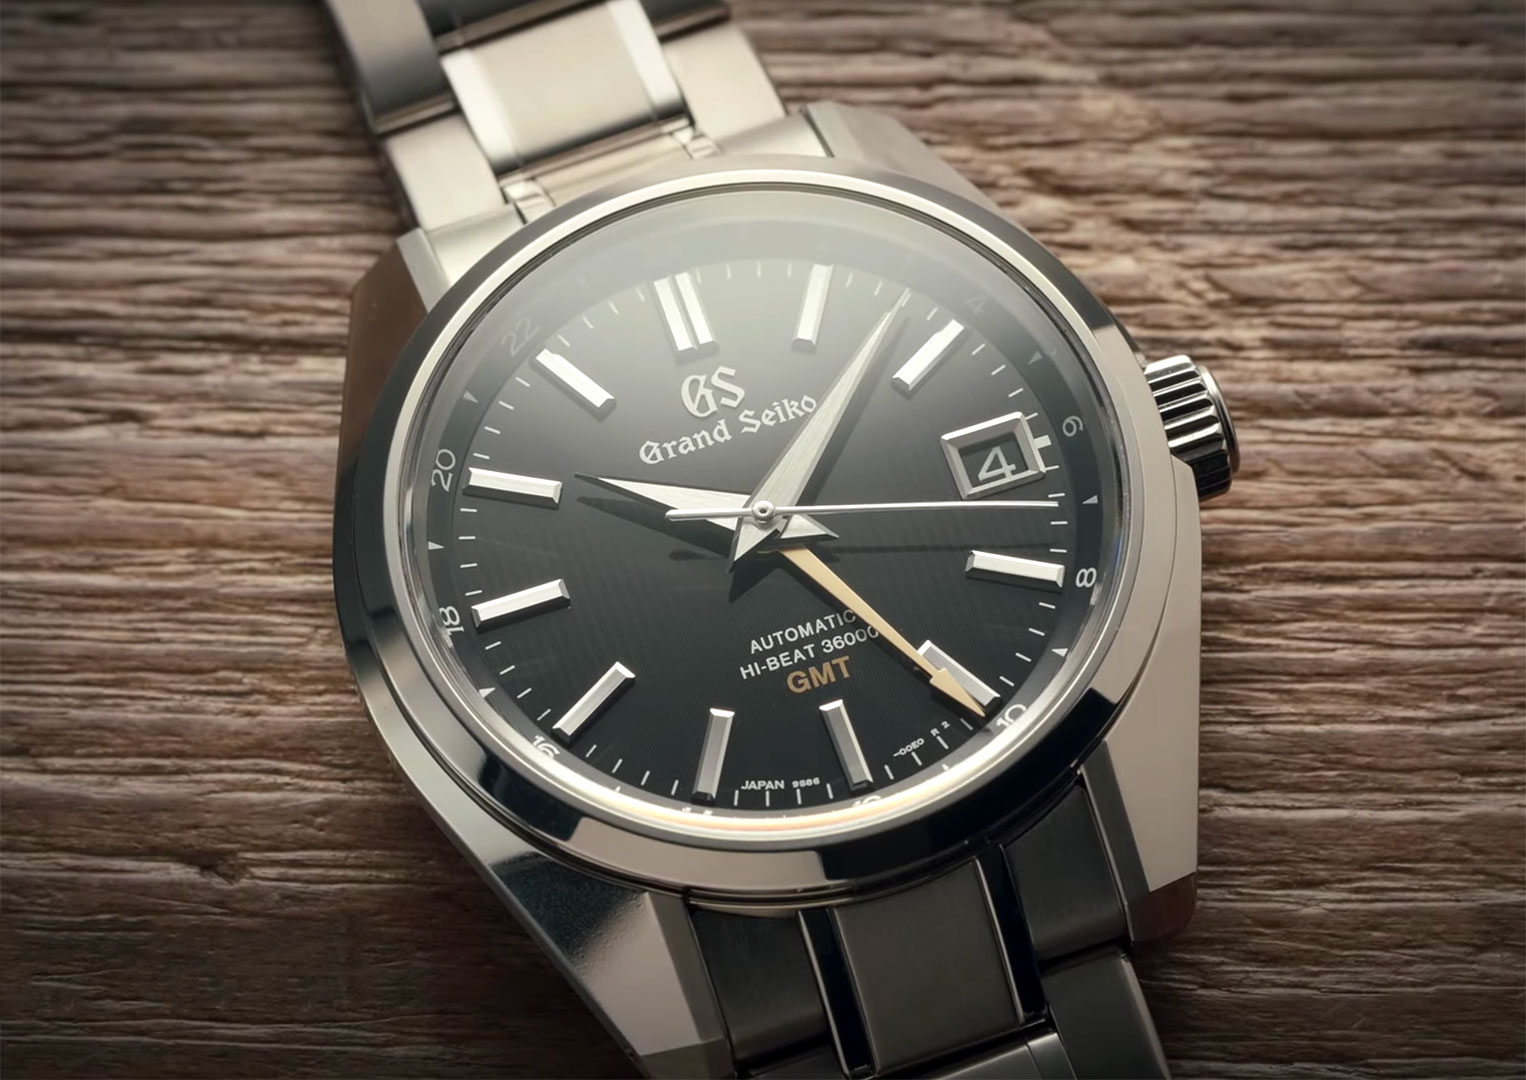 Grand Seiko utilises innovative materials along with highly accurate movements to separate itself from regular Seiko watches